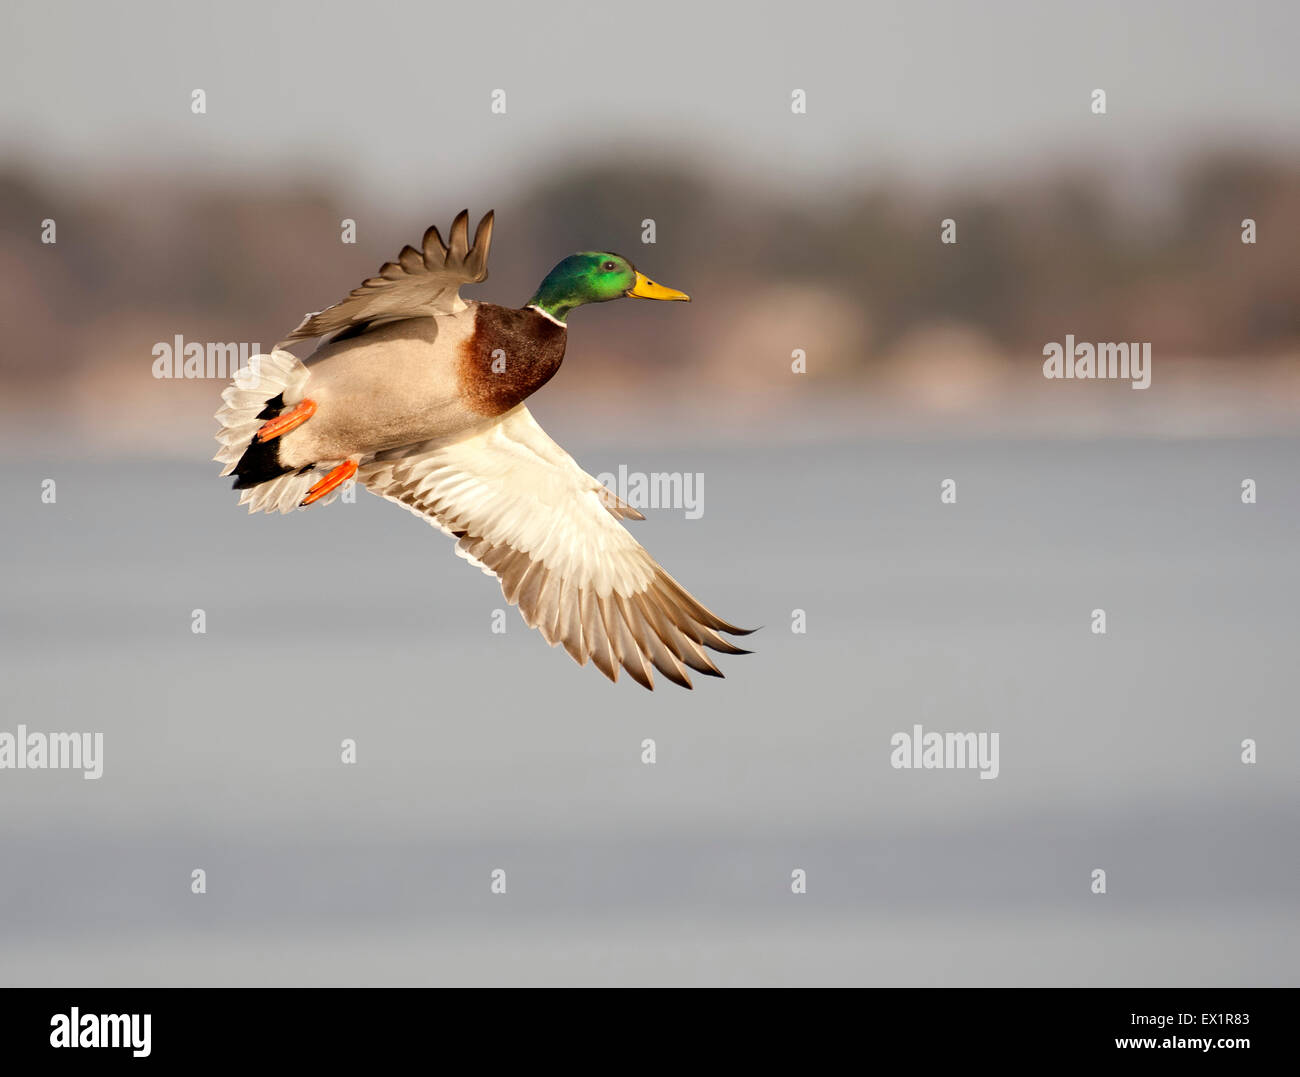 Mallard Duck Flying Over The Frozen River Stock Photo 84862739 Alamy